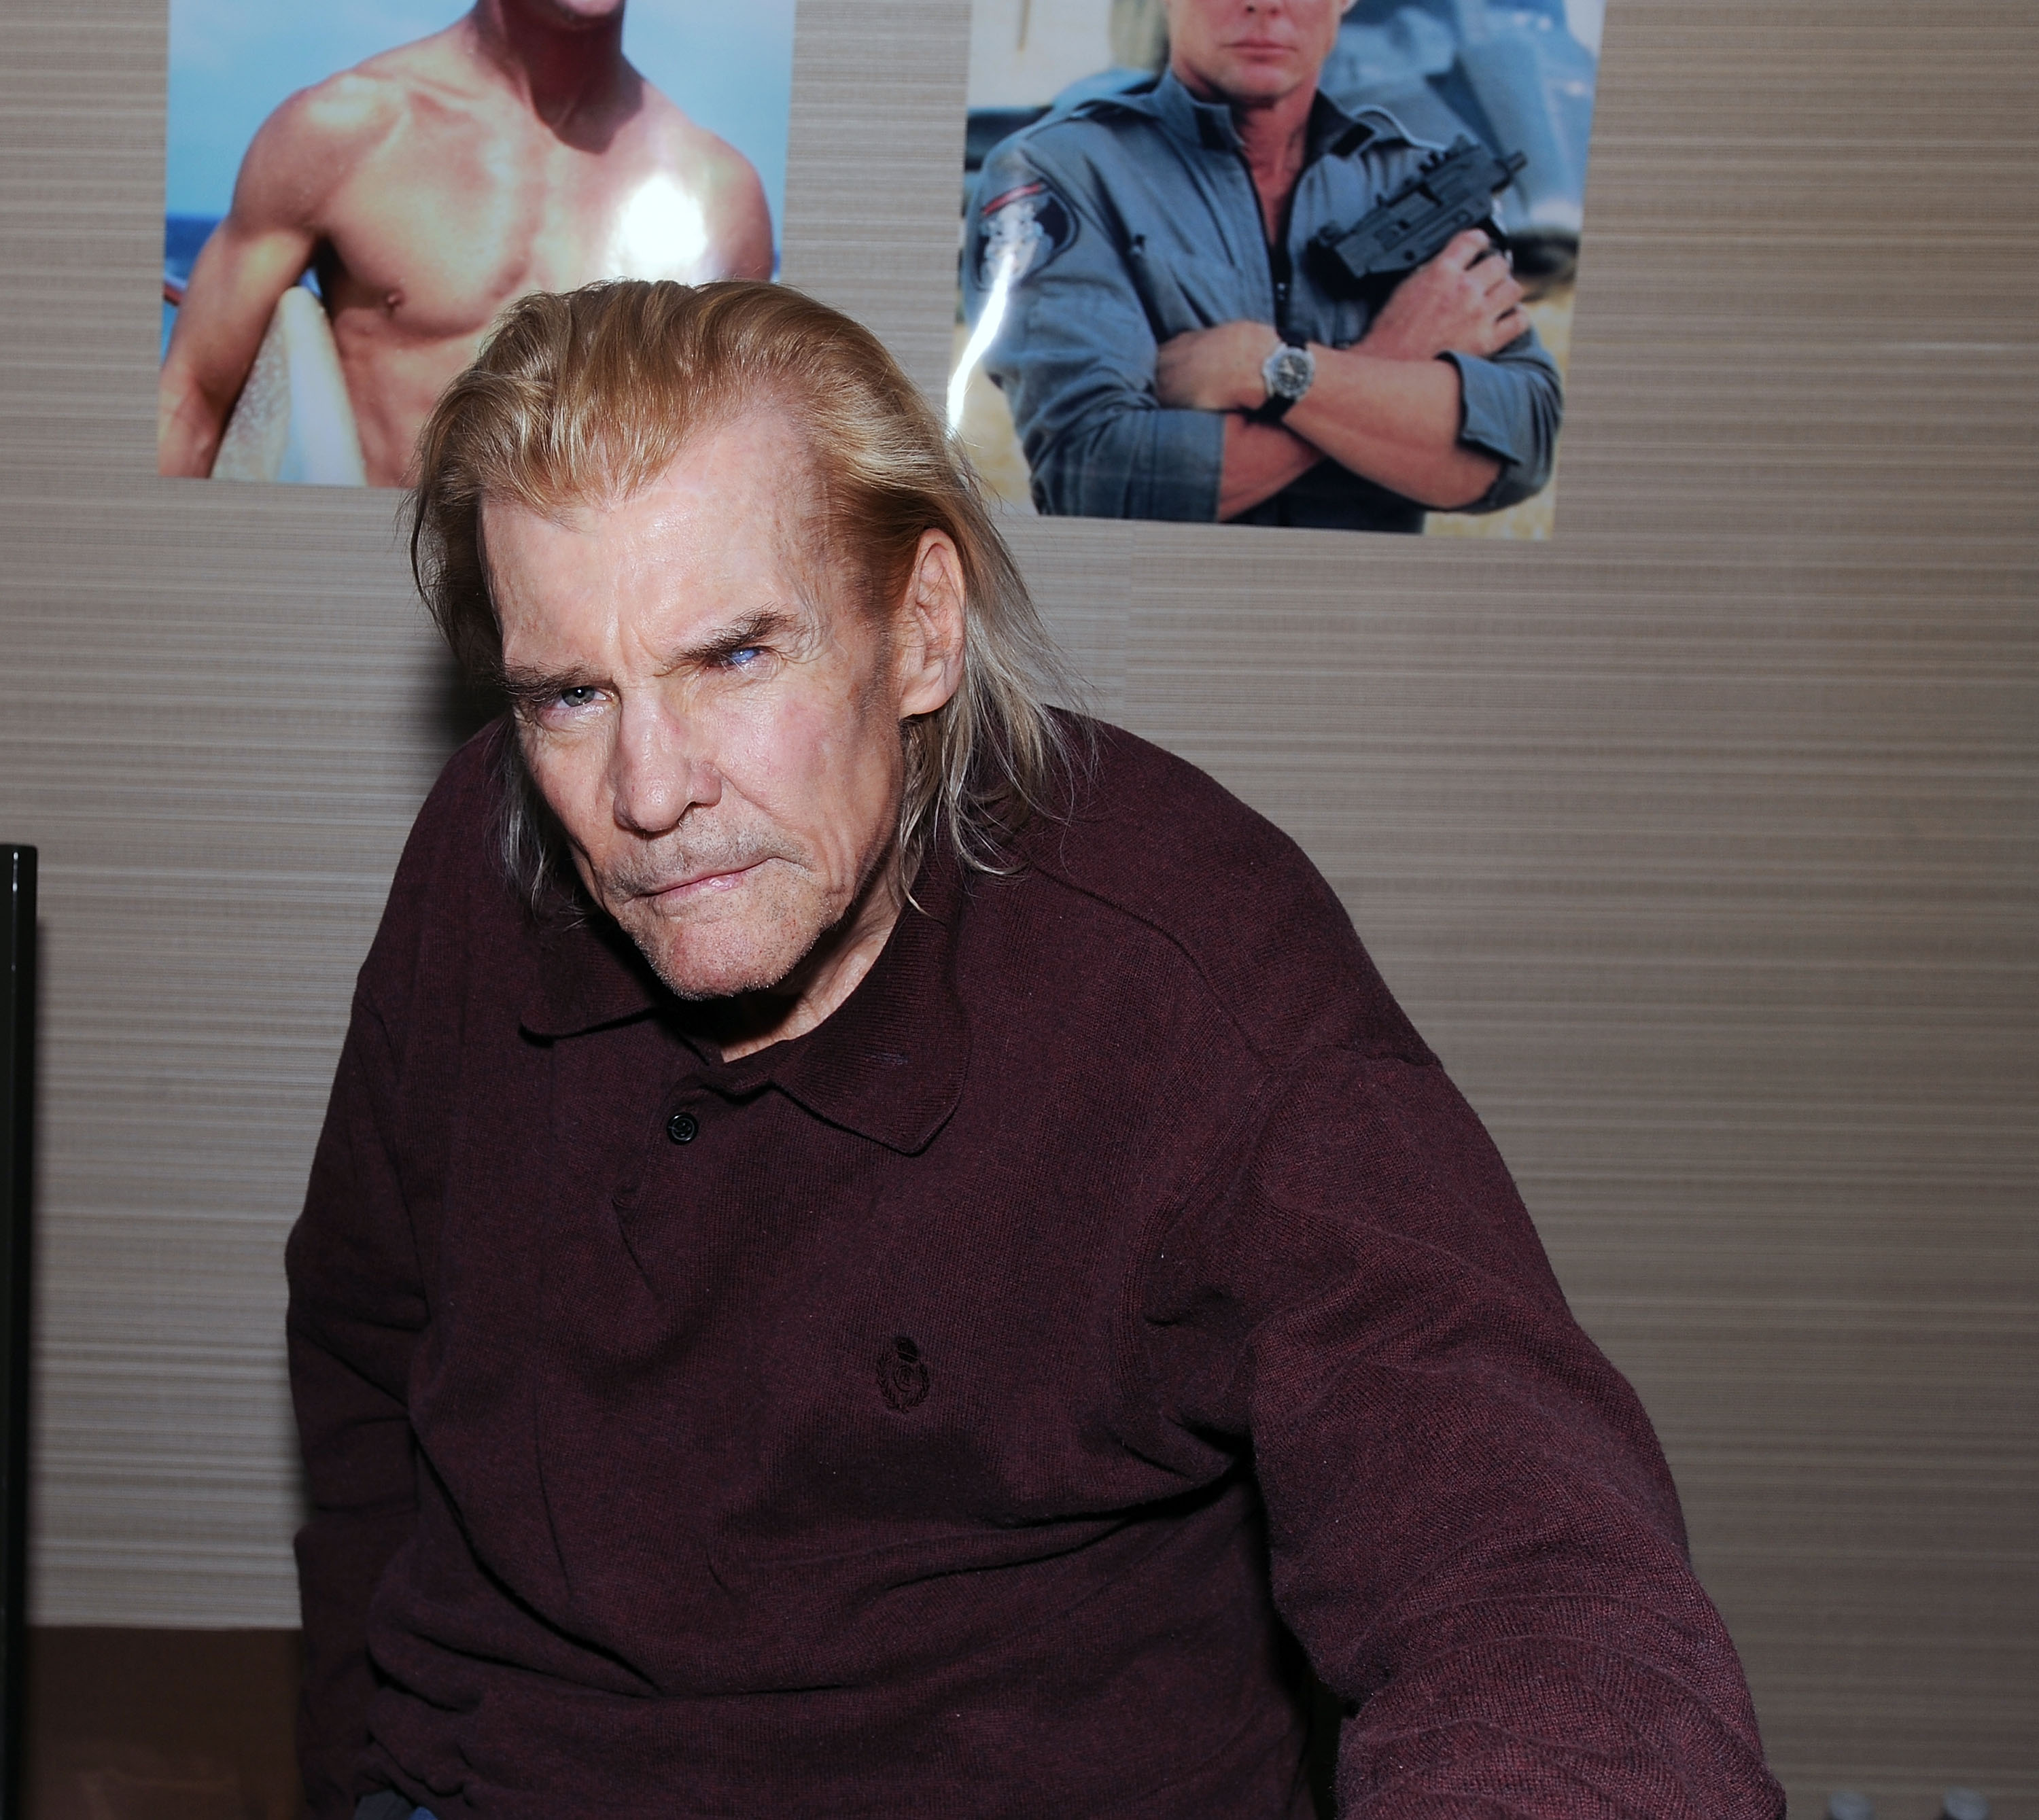 Jan Michael Vincent attends Chiller Theatre Expo Spring 2017 at Hilton Parsippany on April 21, 2017   Photo: Getty Images